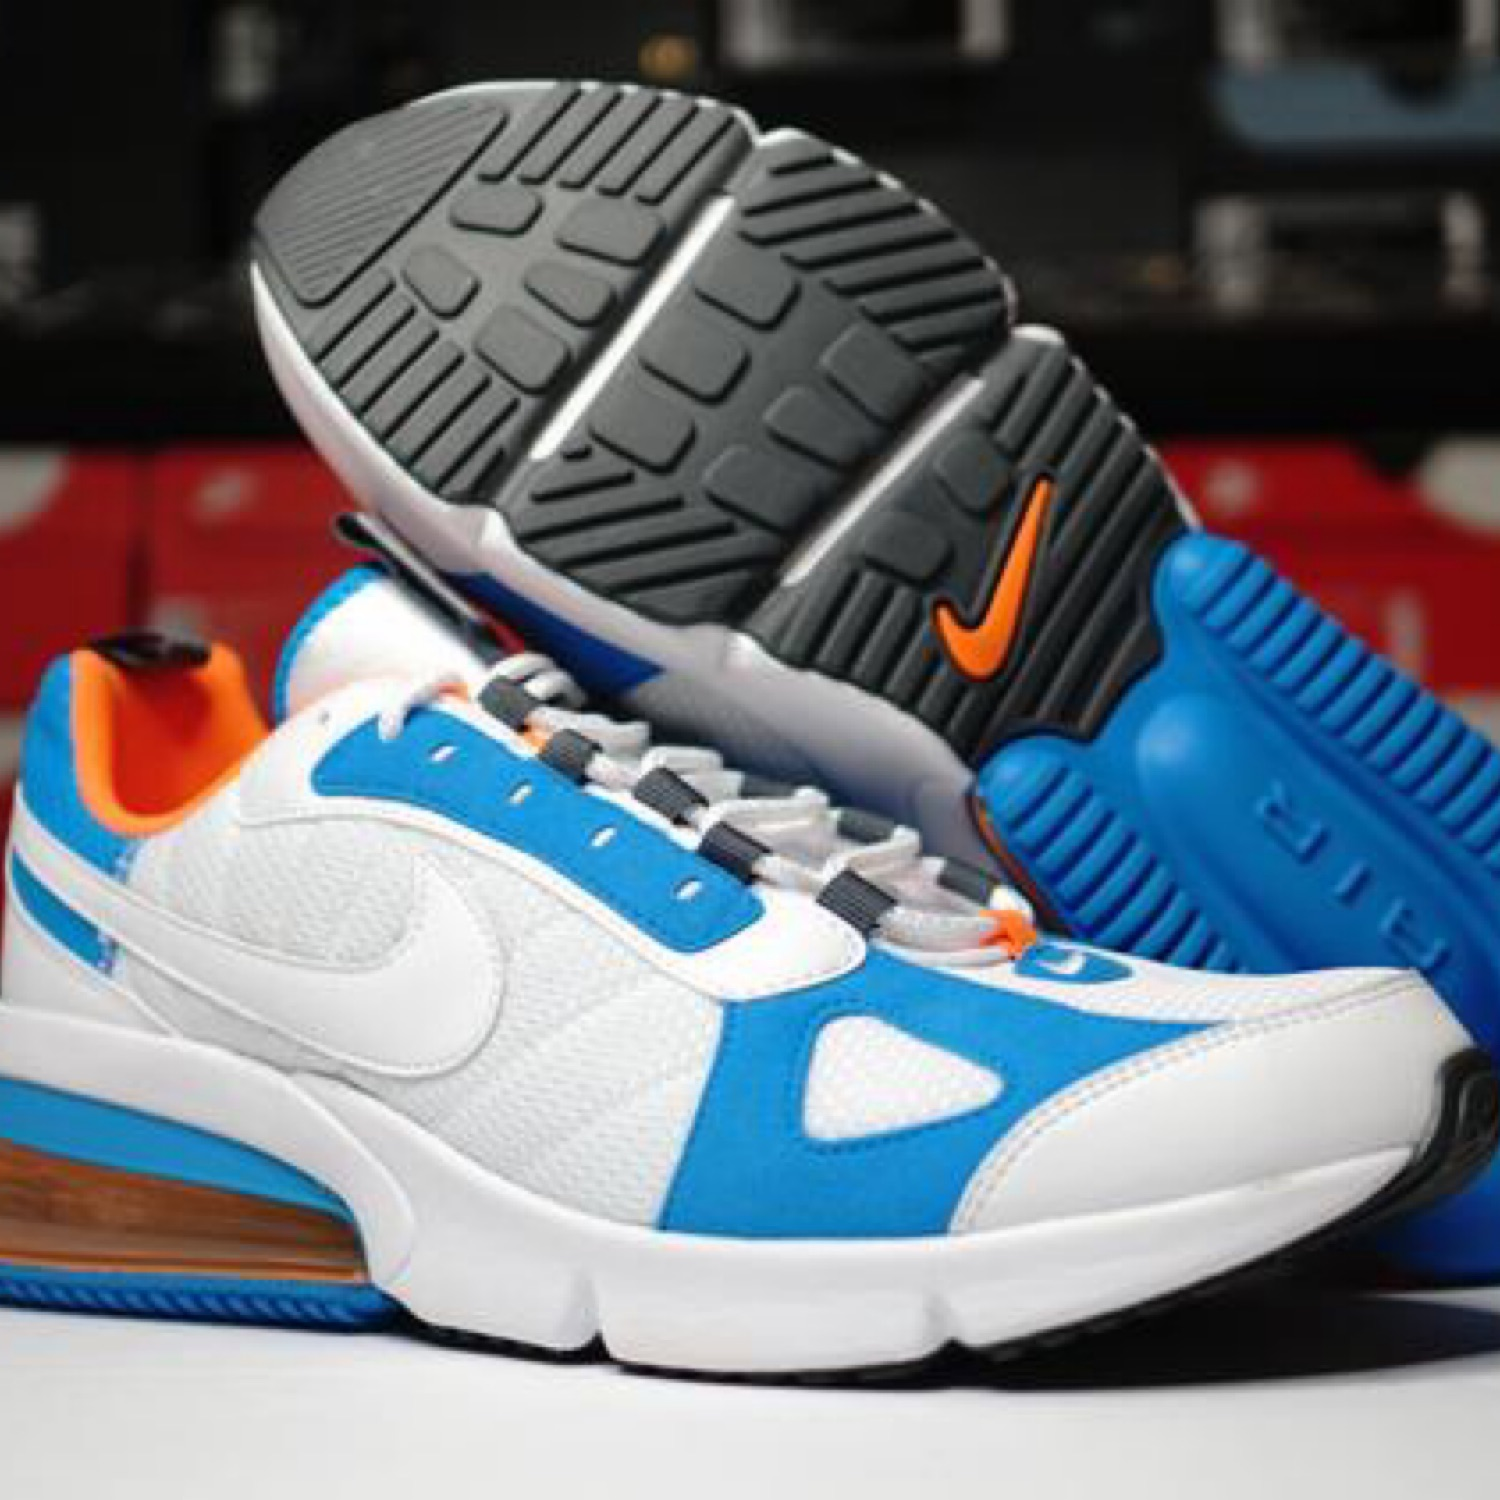 Nike Air Max 270 Futura White Blue Orange 9 5